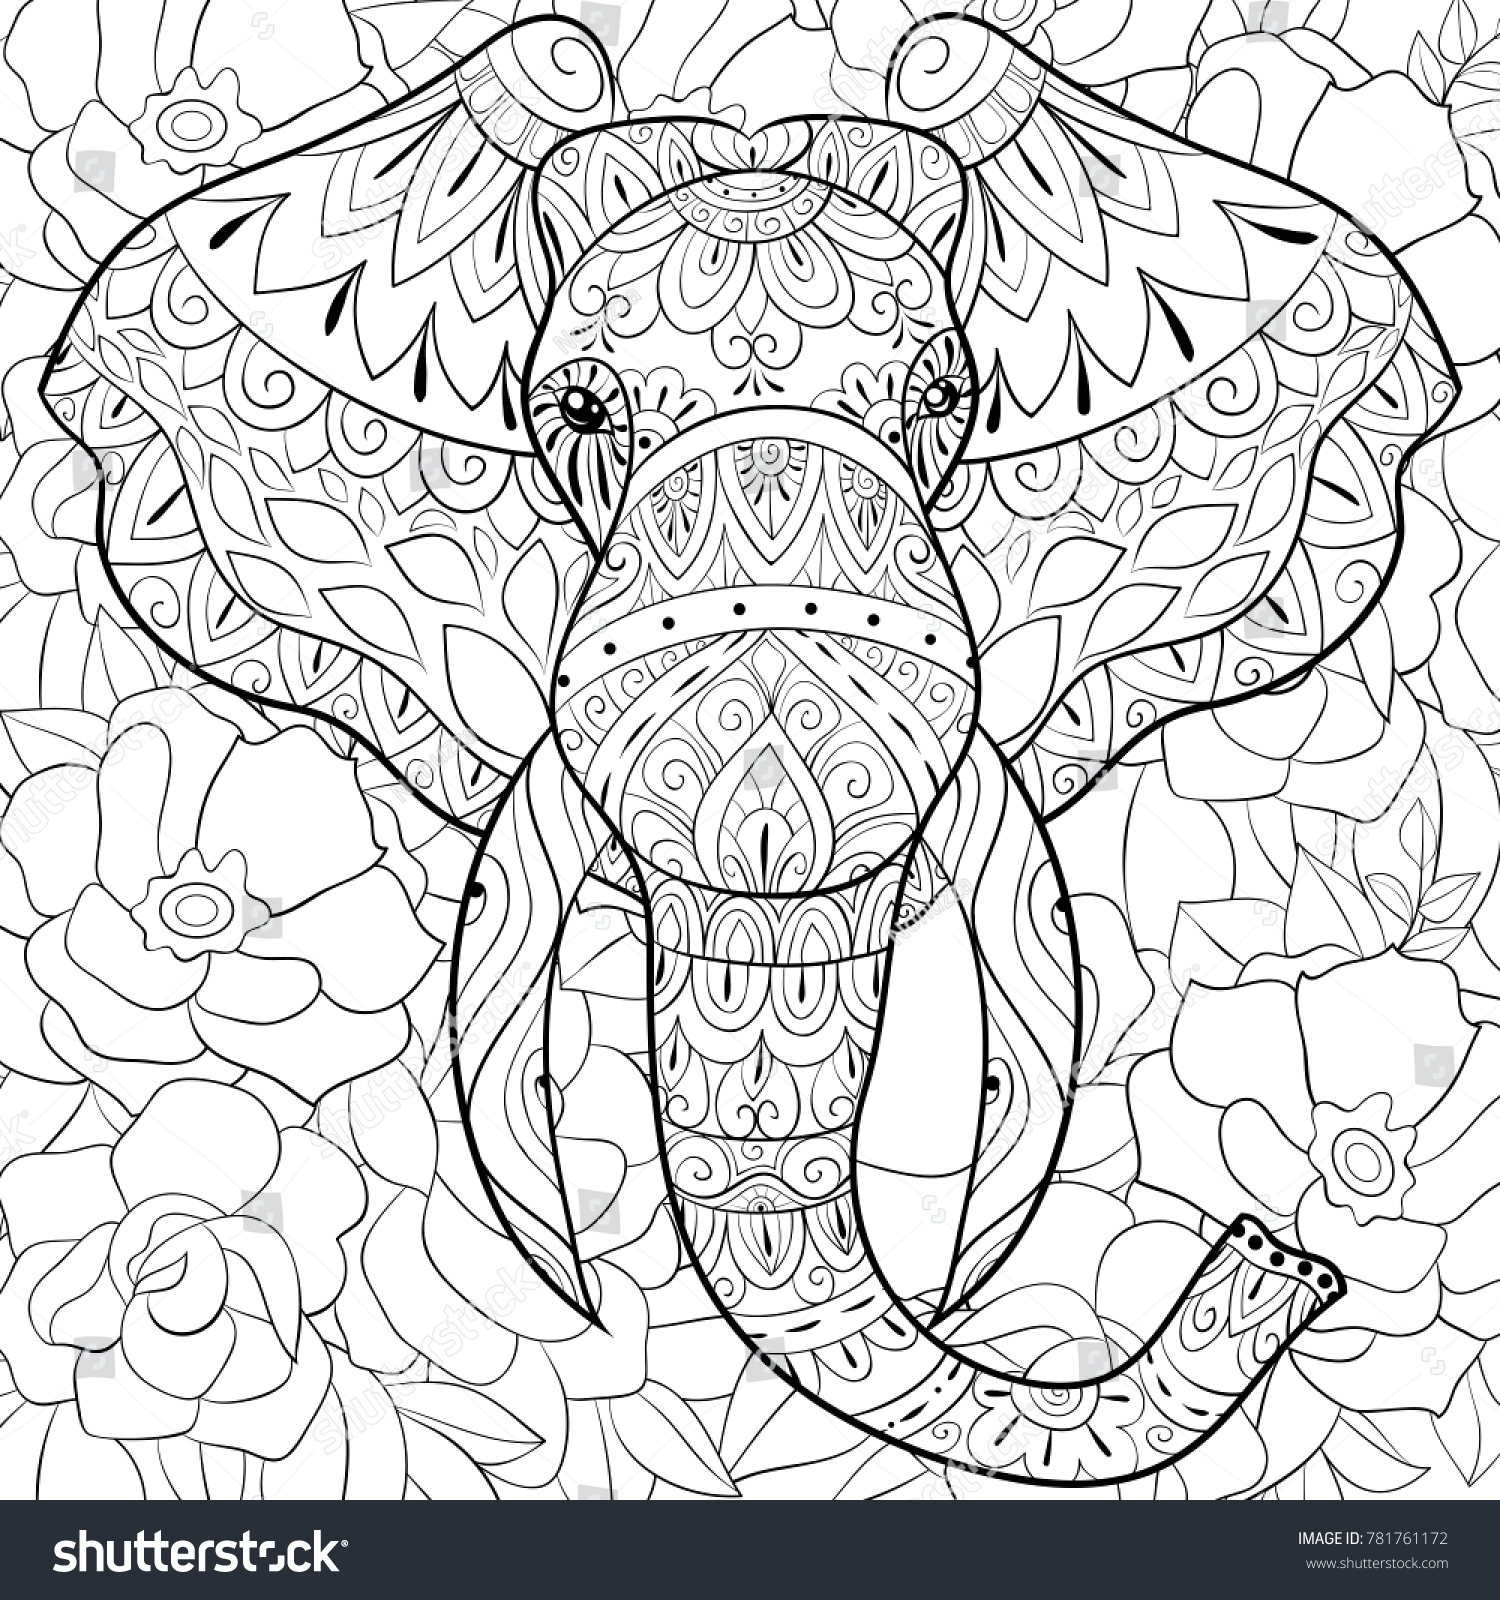 Adult Coloring Bookpage Head Elephant On Stock Vector (Royalty Free ...